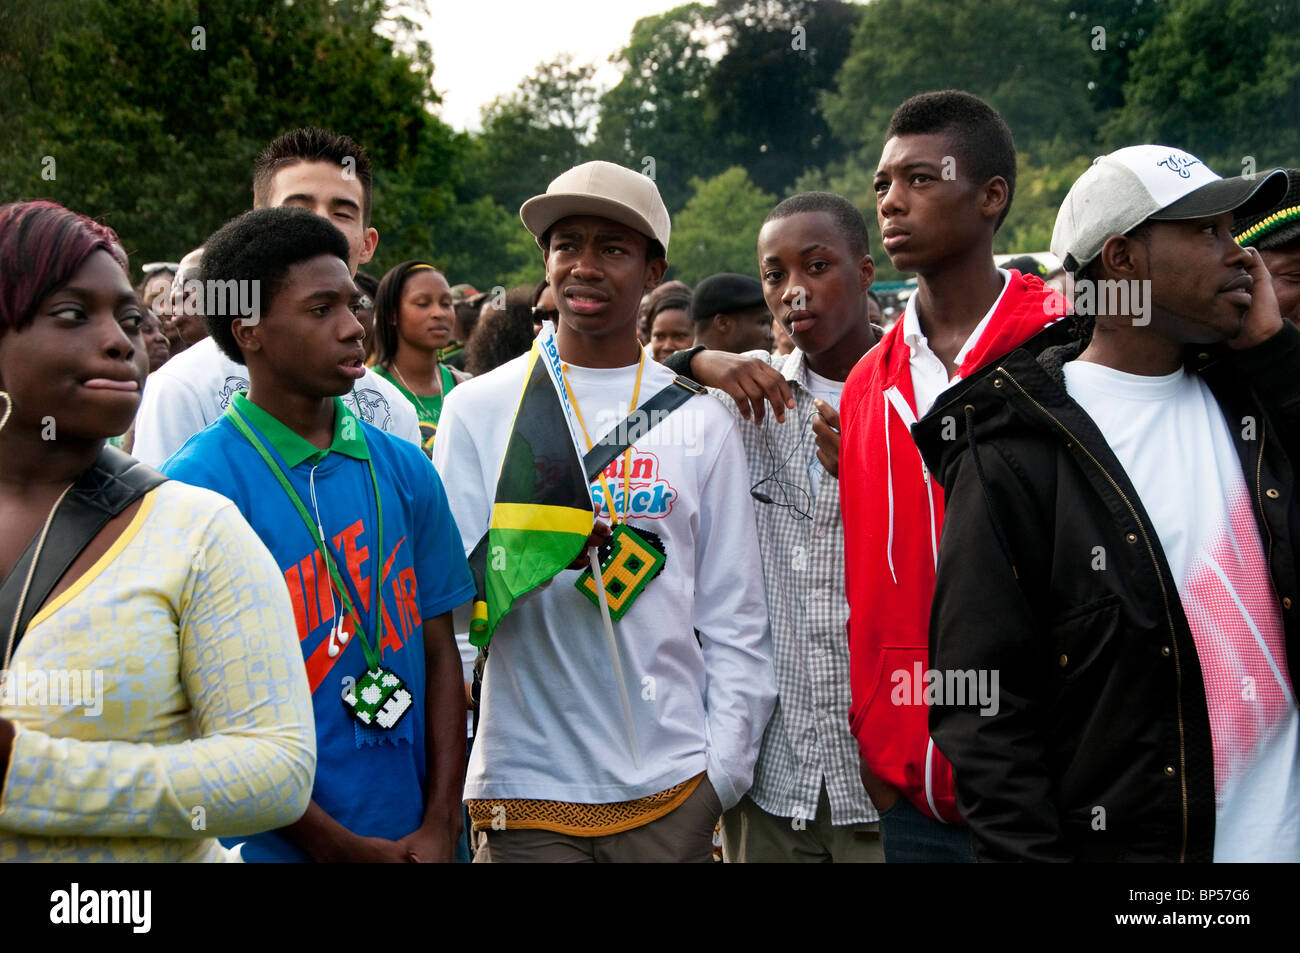 Caribbean People: Group Of Afro Caribbean Youths At West Indian Jamaican